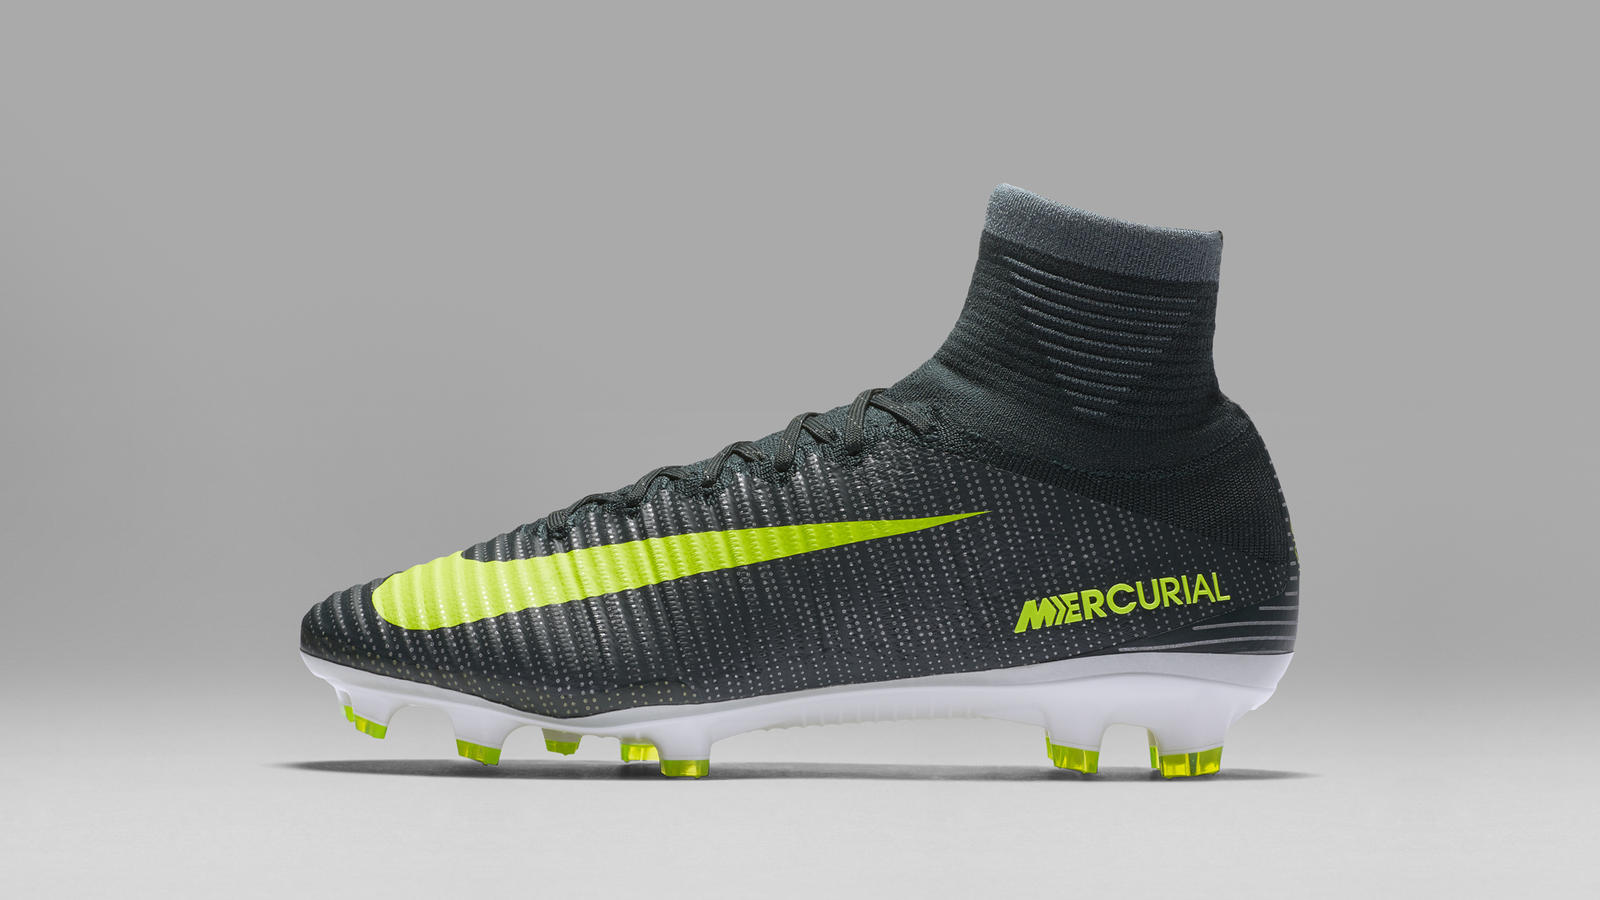 9a000a656ae mercurial cr7 new Football Cleats of 2019